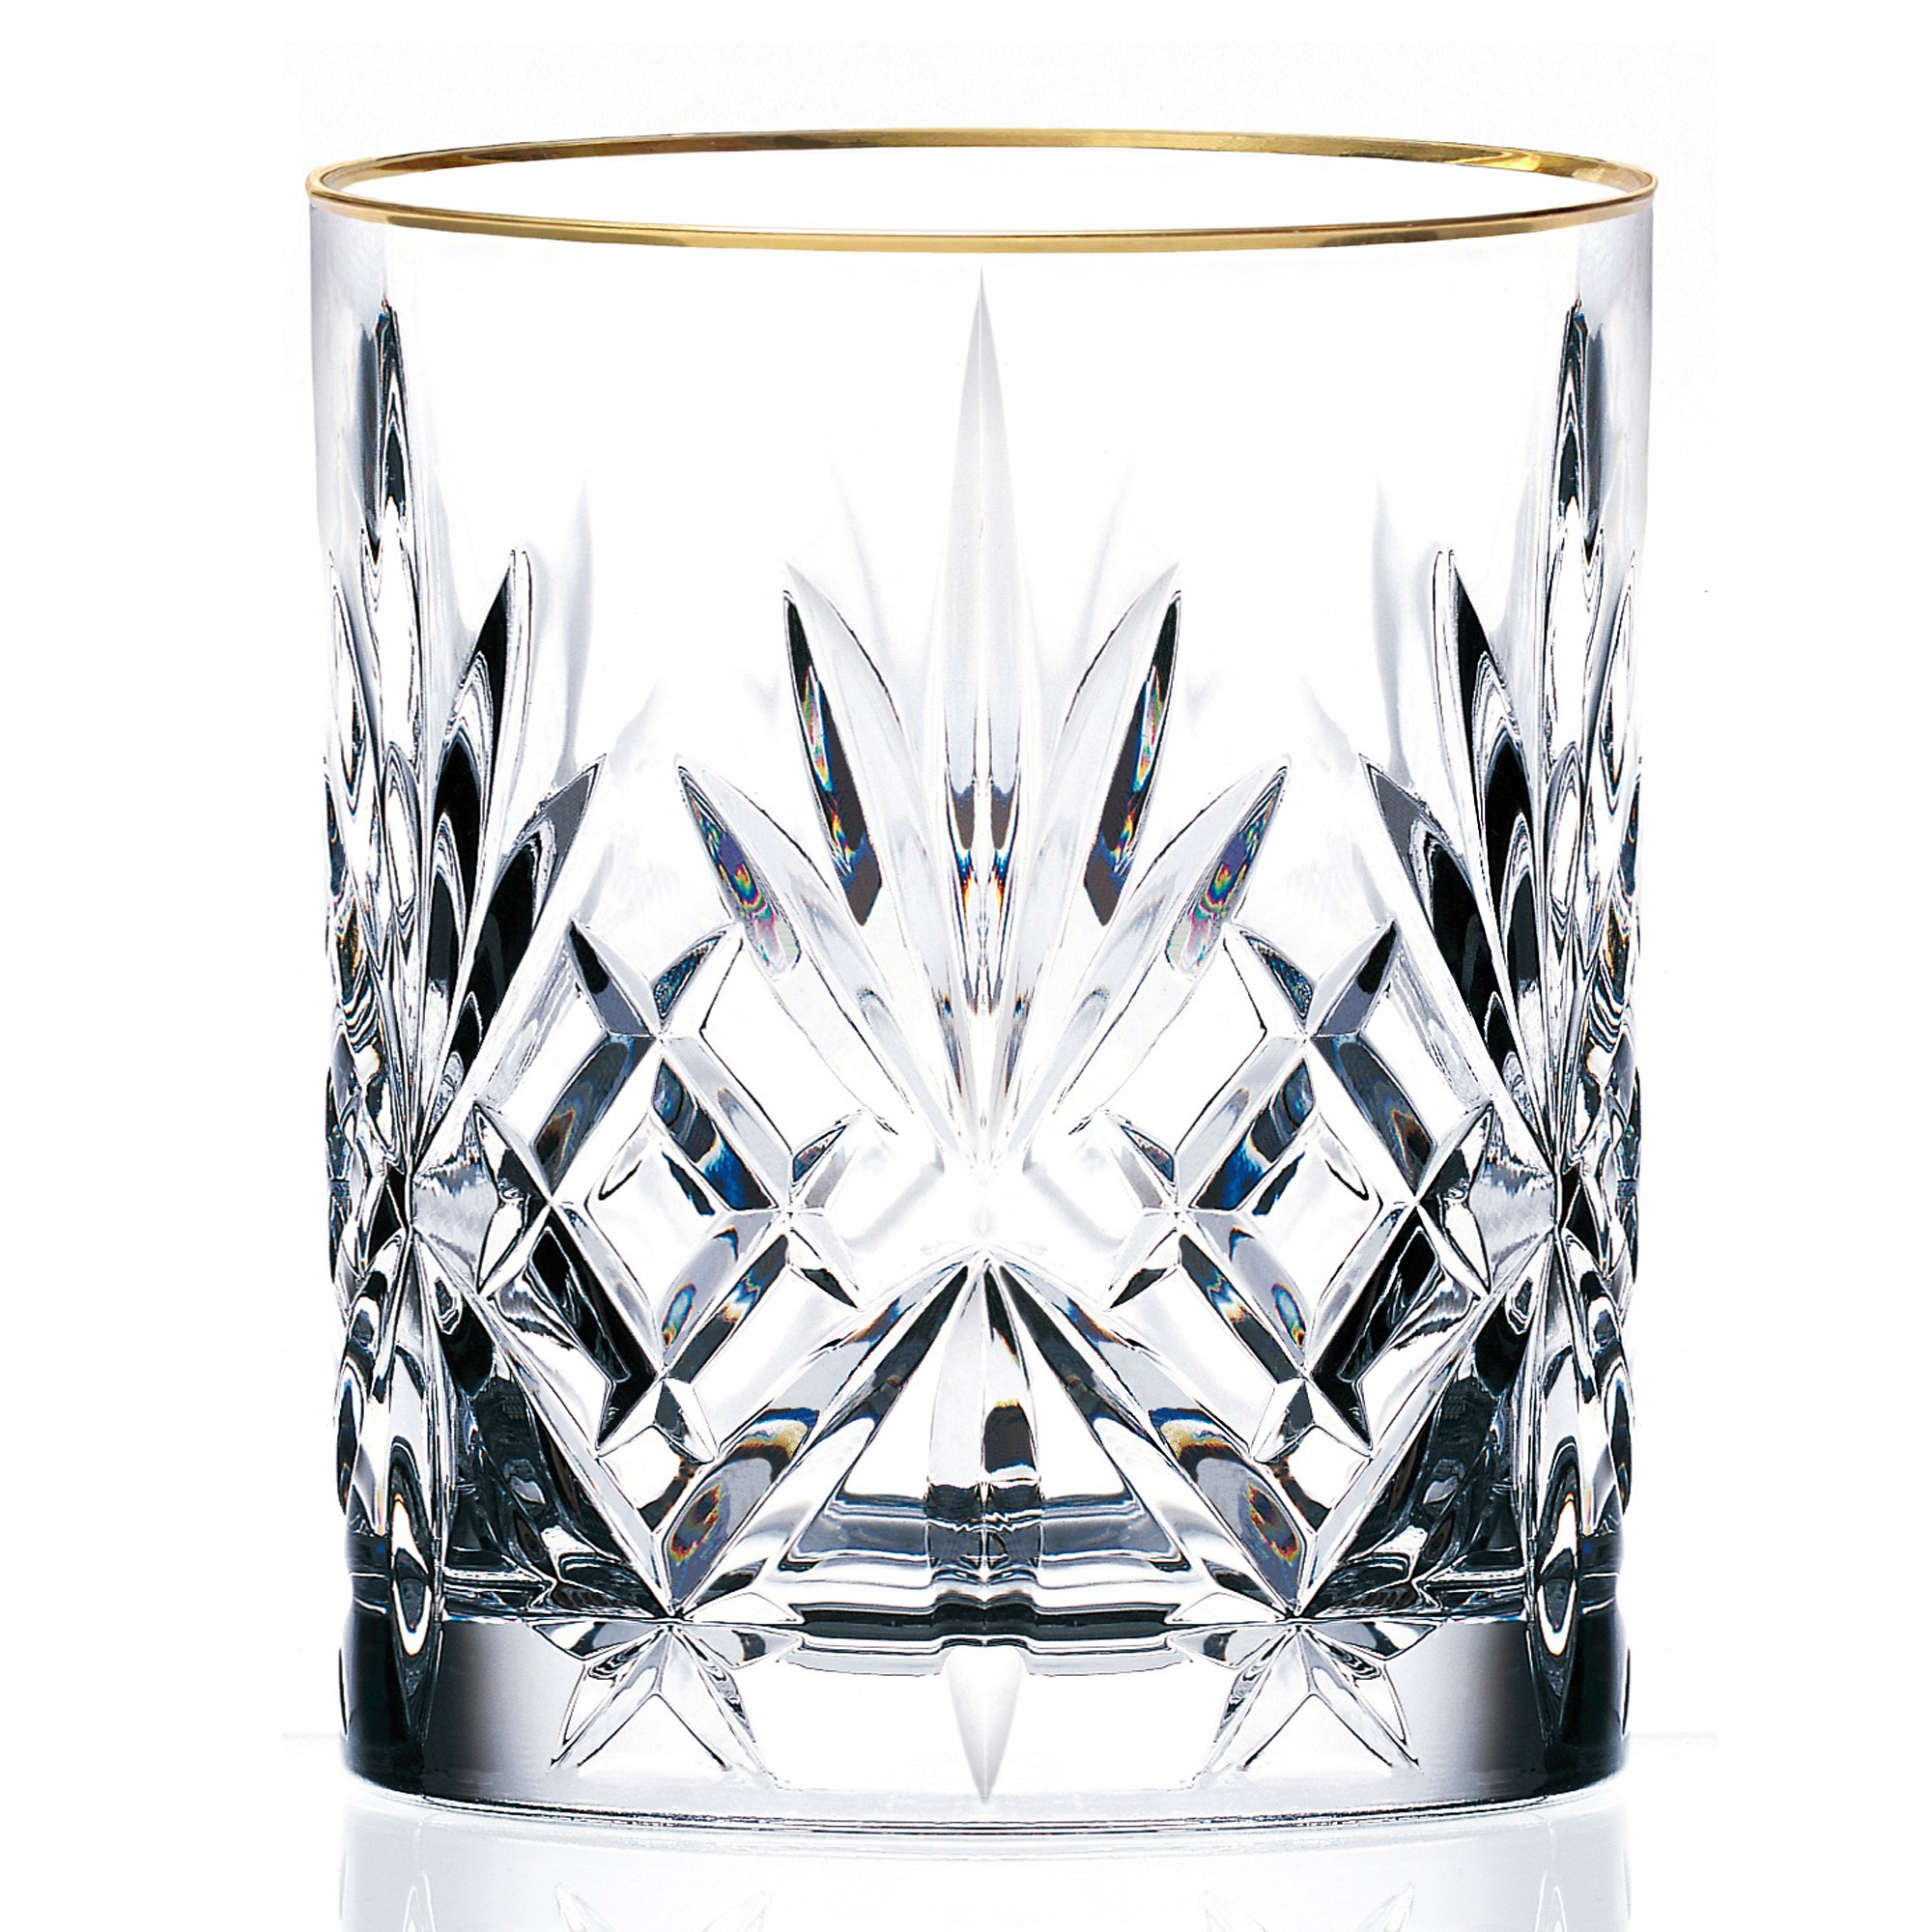 Lorren Home Trends Siena Collection Crystal Double Old Fashion Beverage Glass with Gold Band Design, Set of 4 by Lorren Home Trends